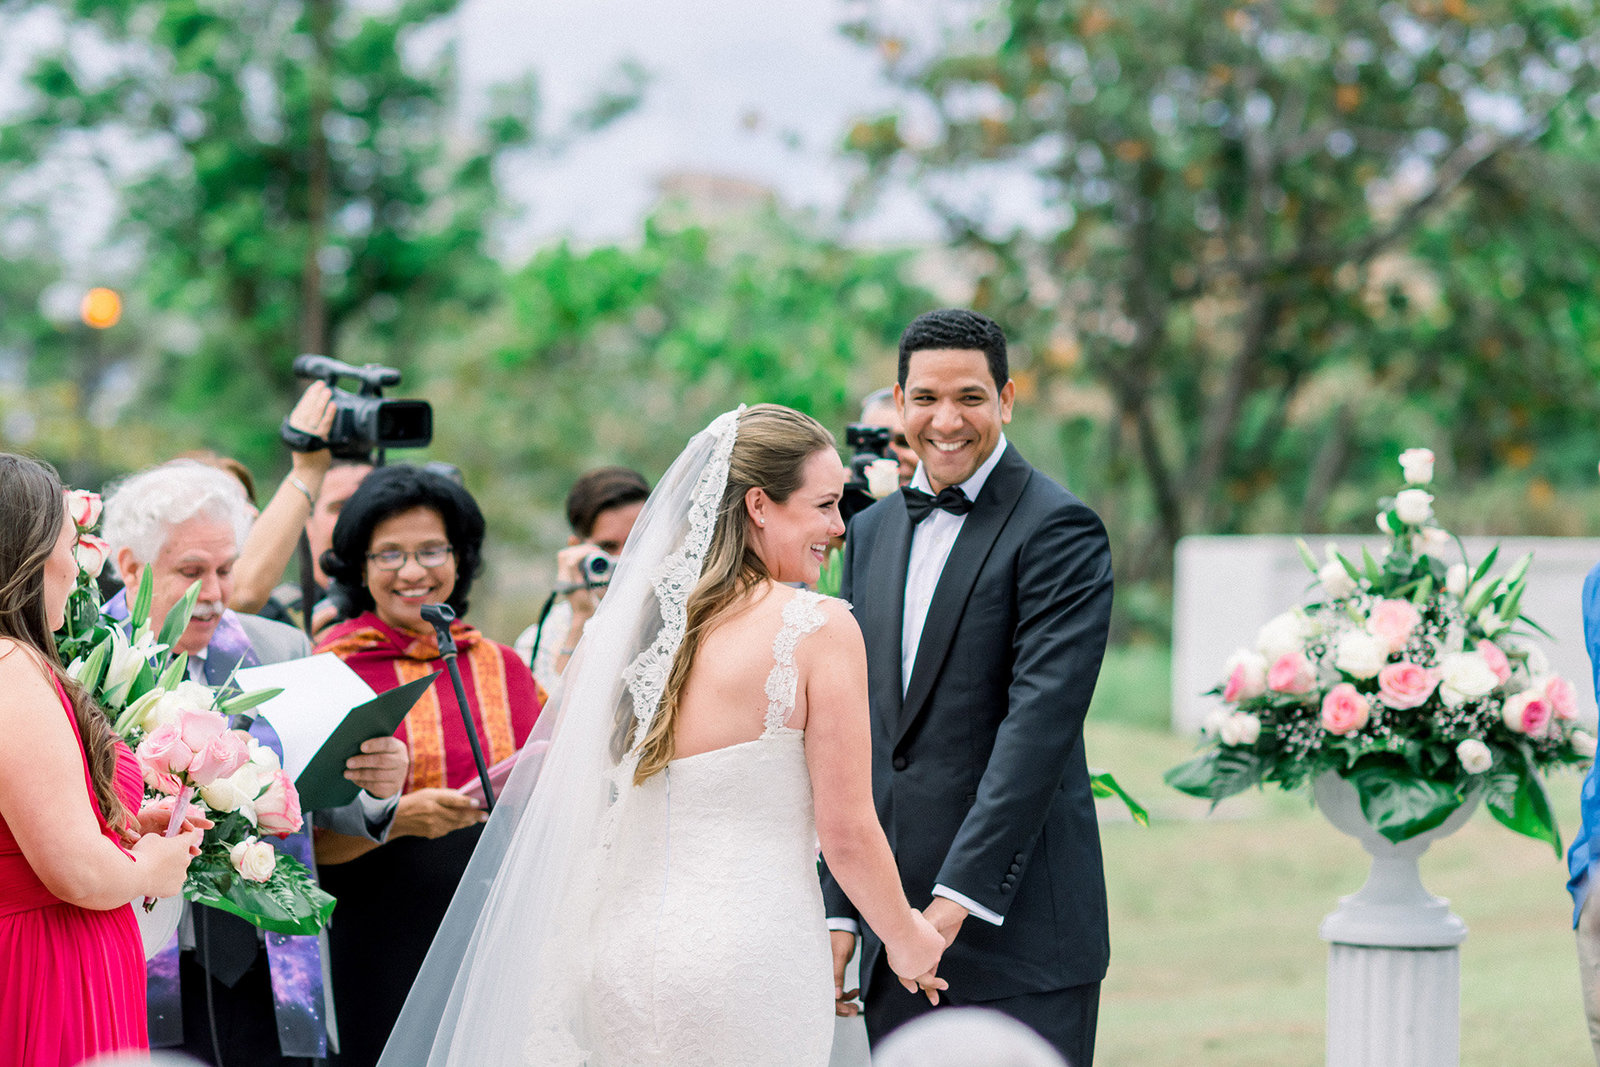 20150328-Pura-Soul-Photo-Cuba-Wedding-62